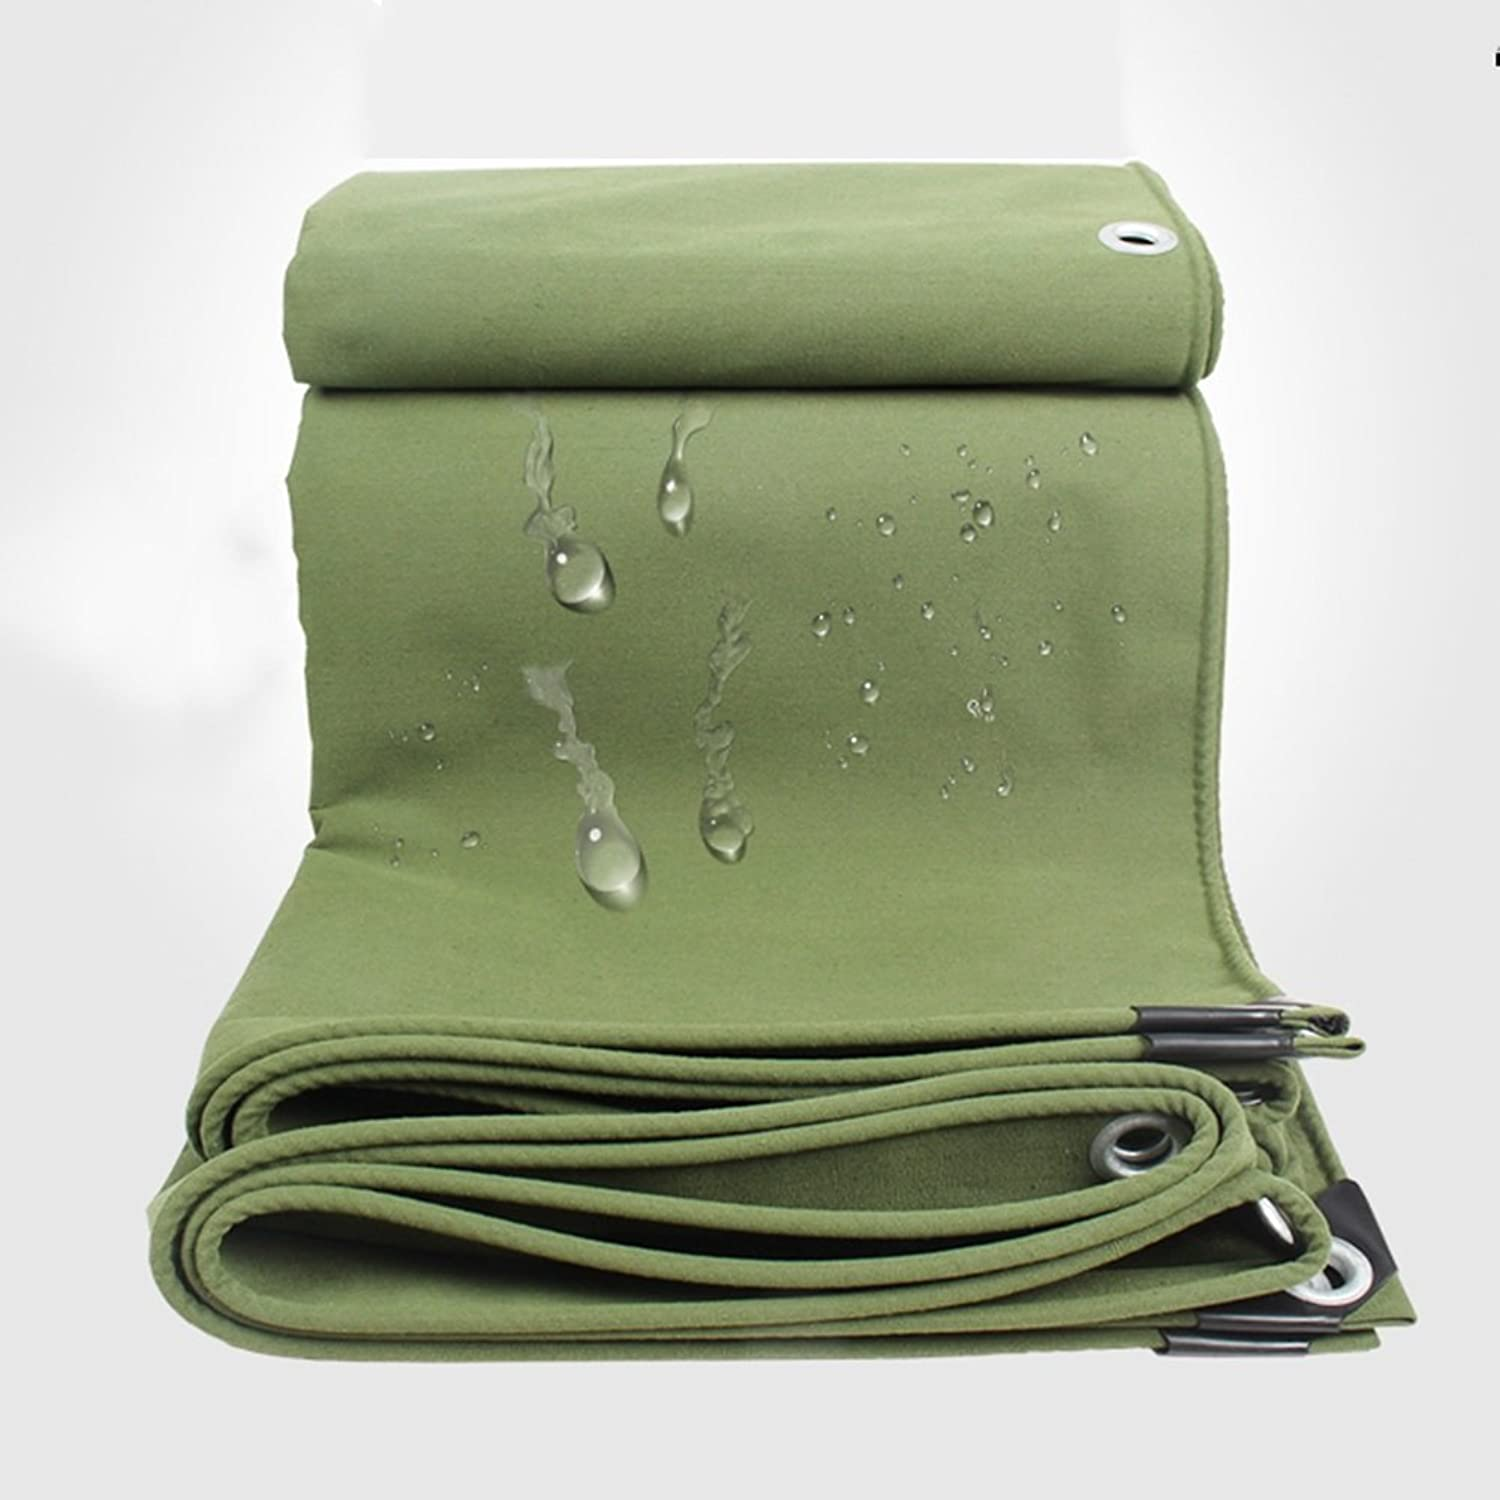 ZEMIN Tarpaulin Waterproof Sunscreen Tent Sheet Windproof Roof Predection Insulation Polyester, Green, 650G M2, 12 Sizes